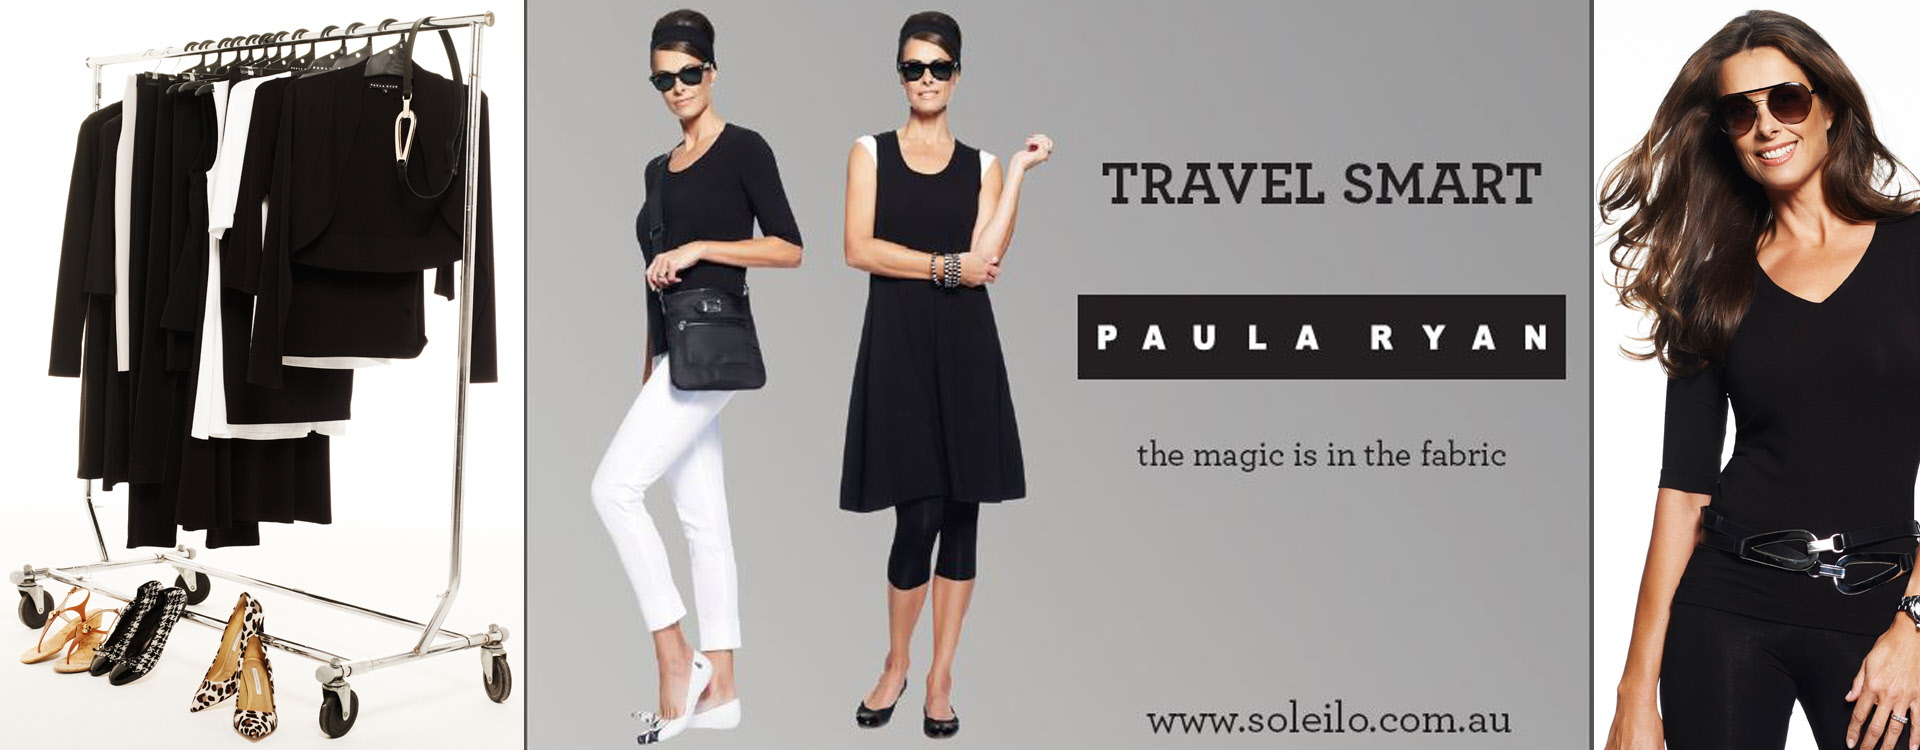 Paula Ryan TRAVEL SMART Wardrobe